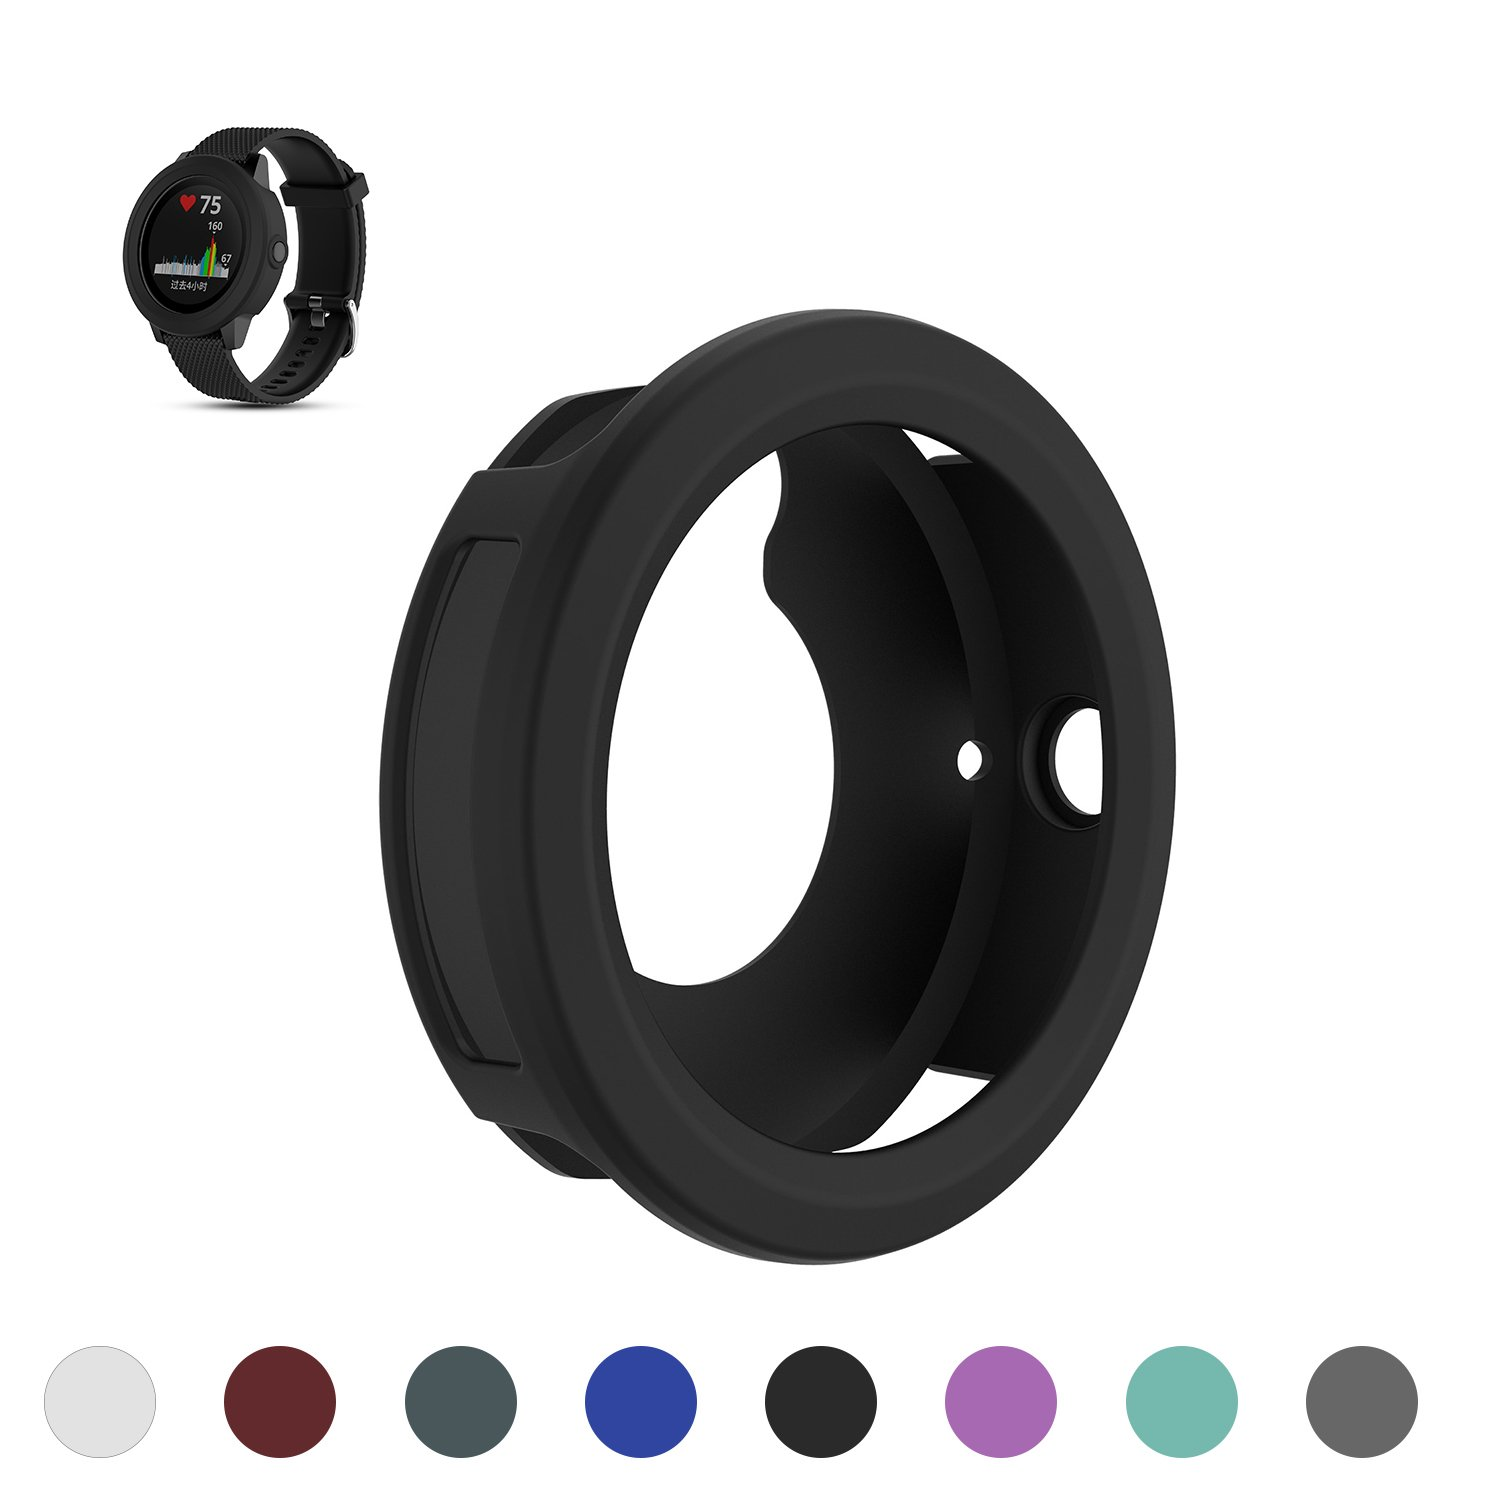 FitTurn case Compatible with Garmin Fenix 5X Plus Case Replacement TPU Accessory Shock-Proof /& Shatter-Resistant Protective Silicone Band Case Cover Sleeve Shell Case with Dust Plug for Fenix 5X Plus